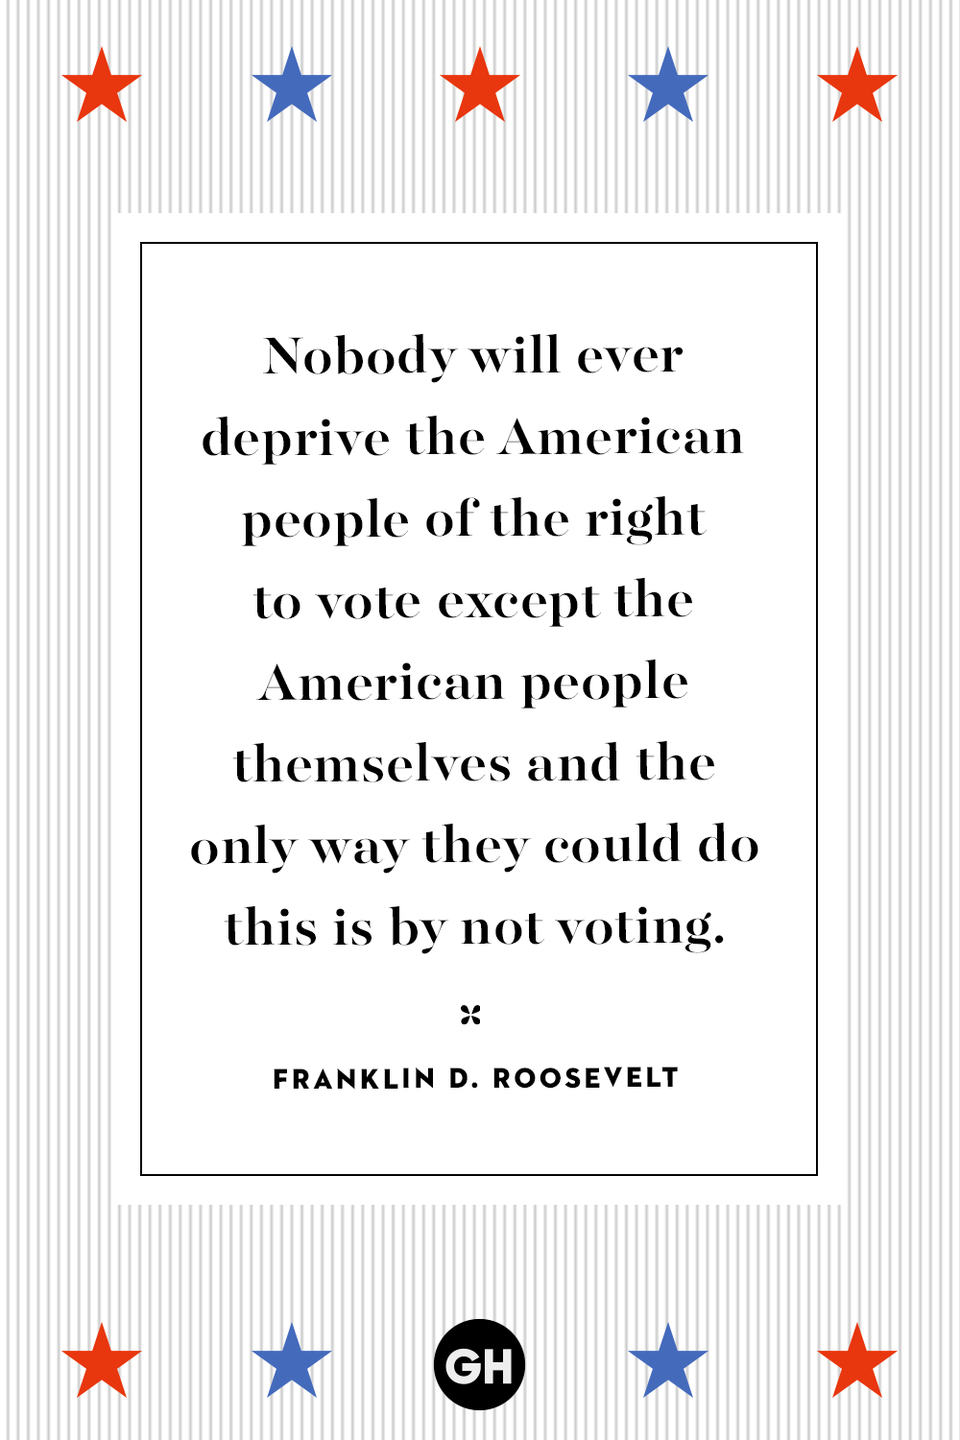 <p>Nobody will ever deprive the American people of the right to vote except the American people themselves and the only way they could do this is by not voting.</p>